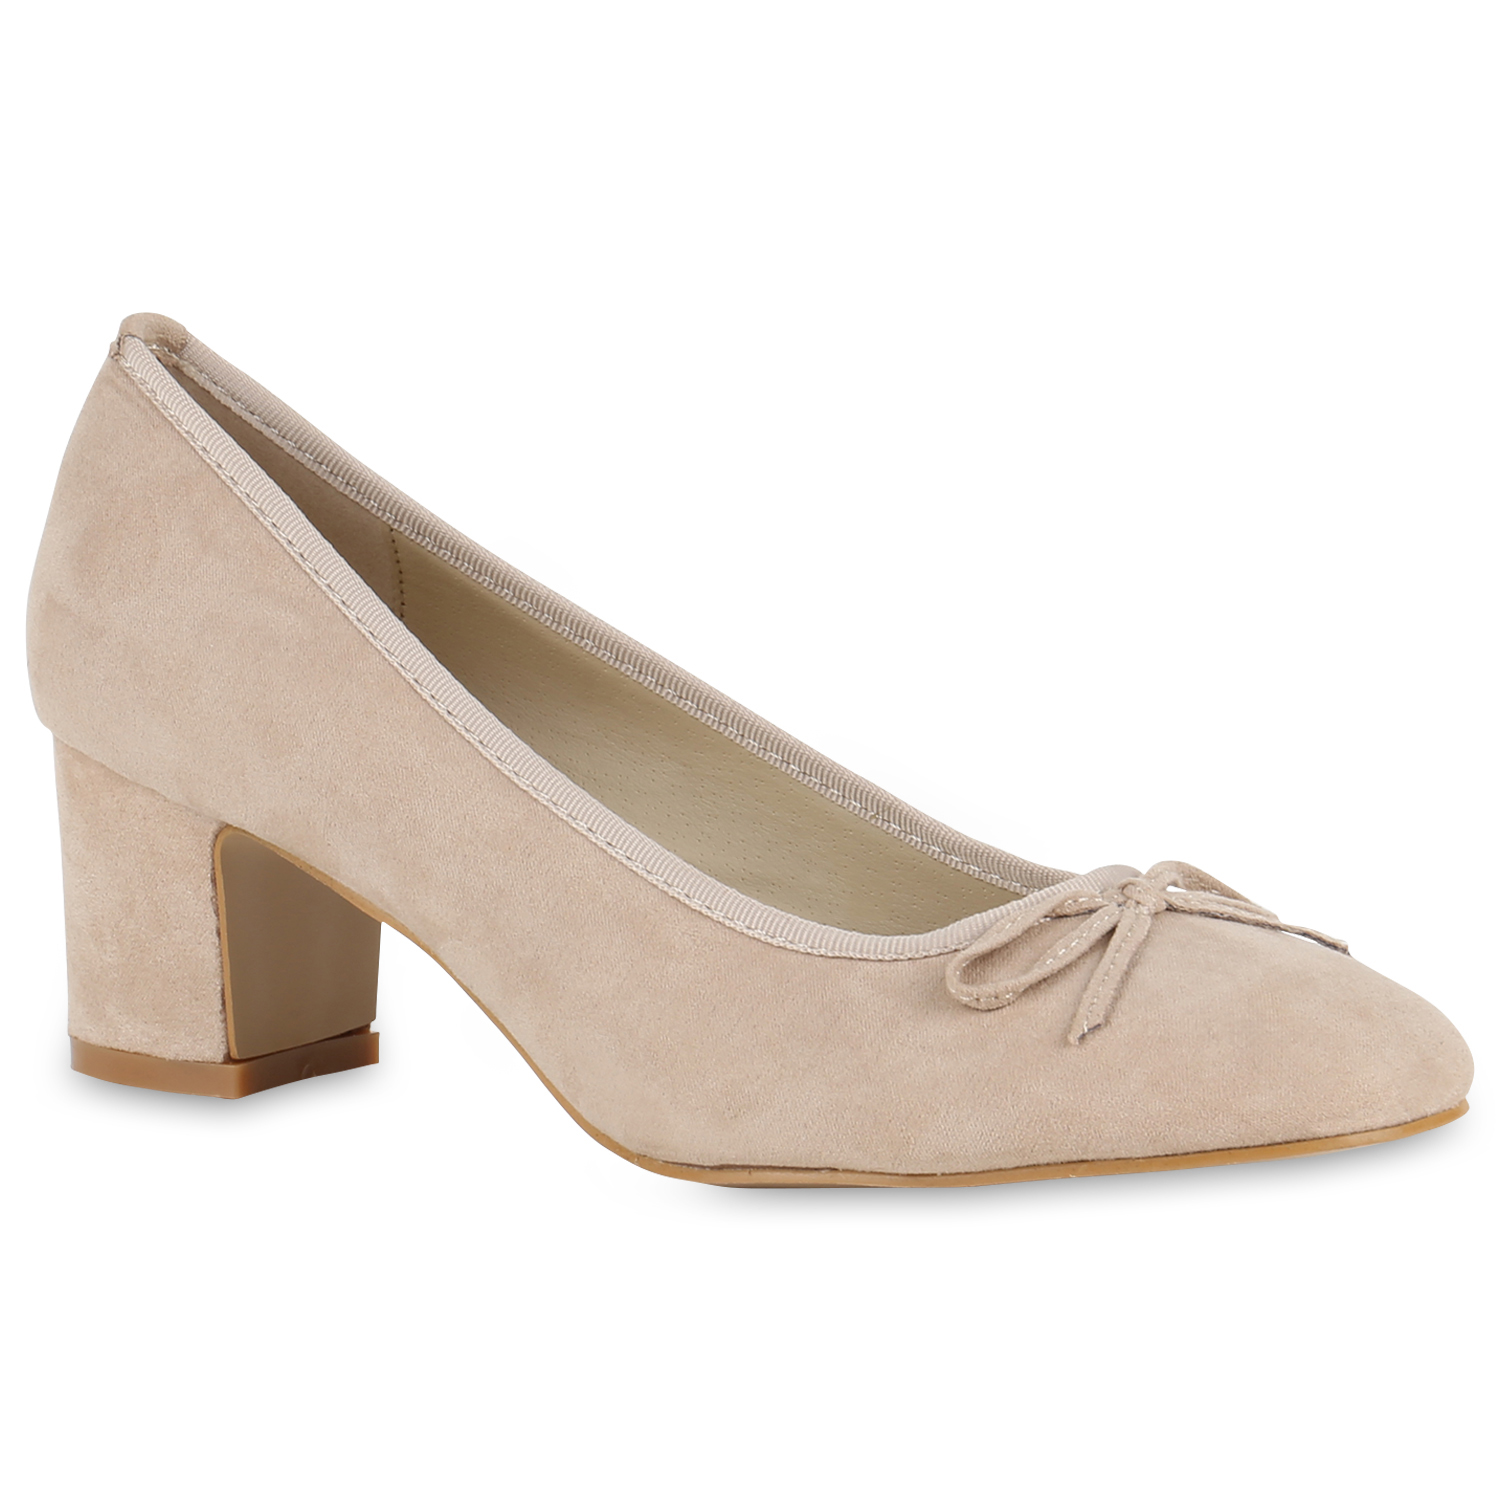 47001b07ecb80b Damen Pumps in Creme (815578-493) - stiefelparadies.de